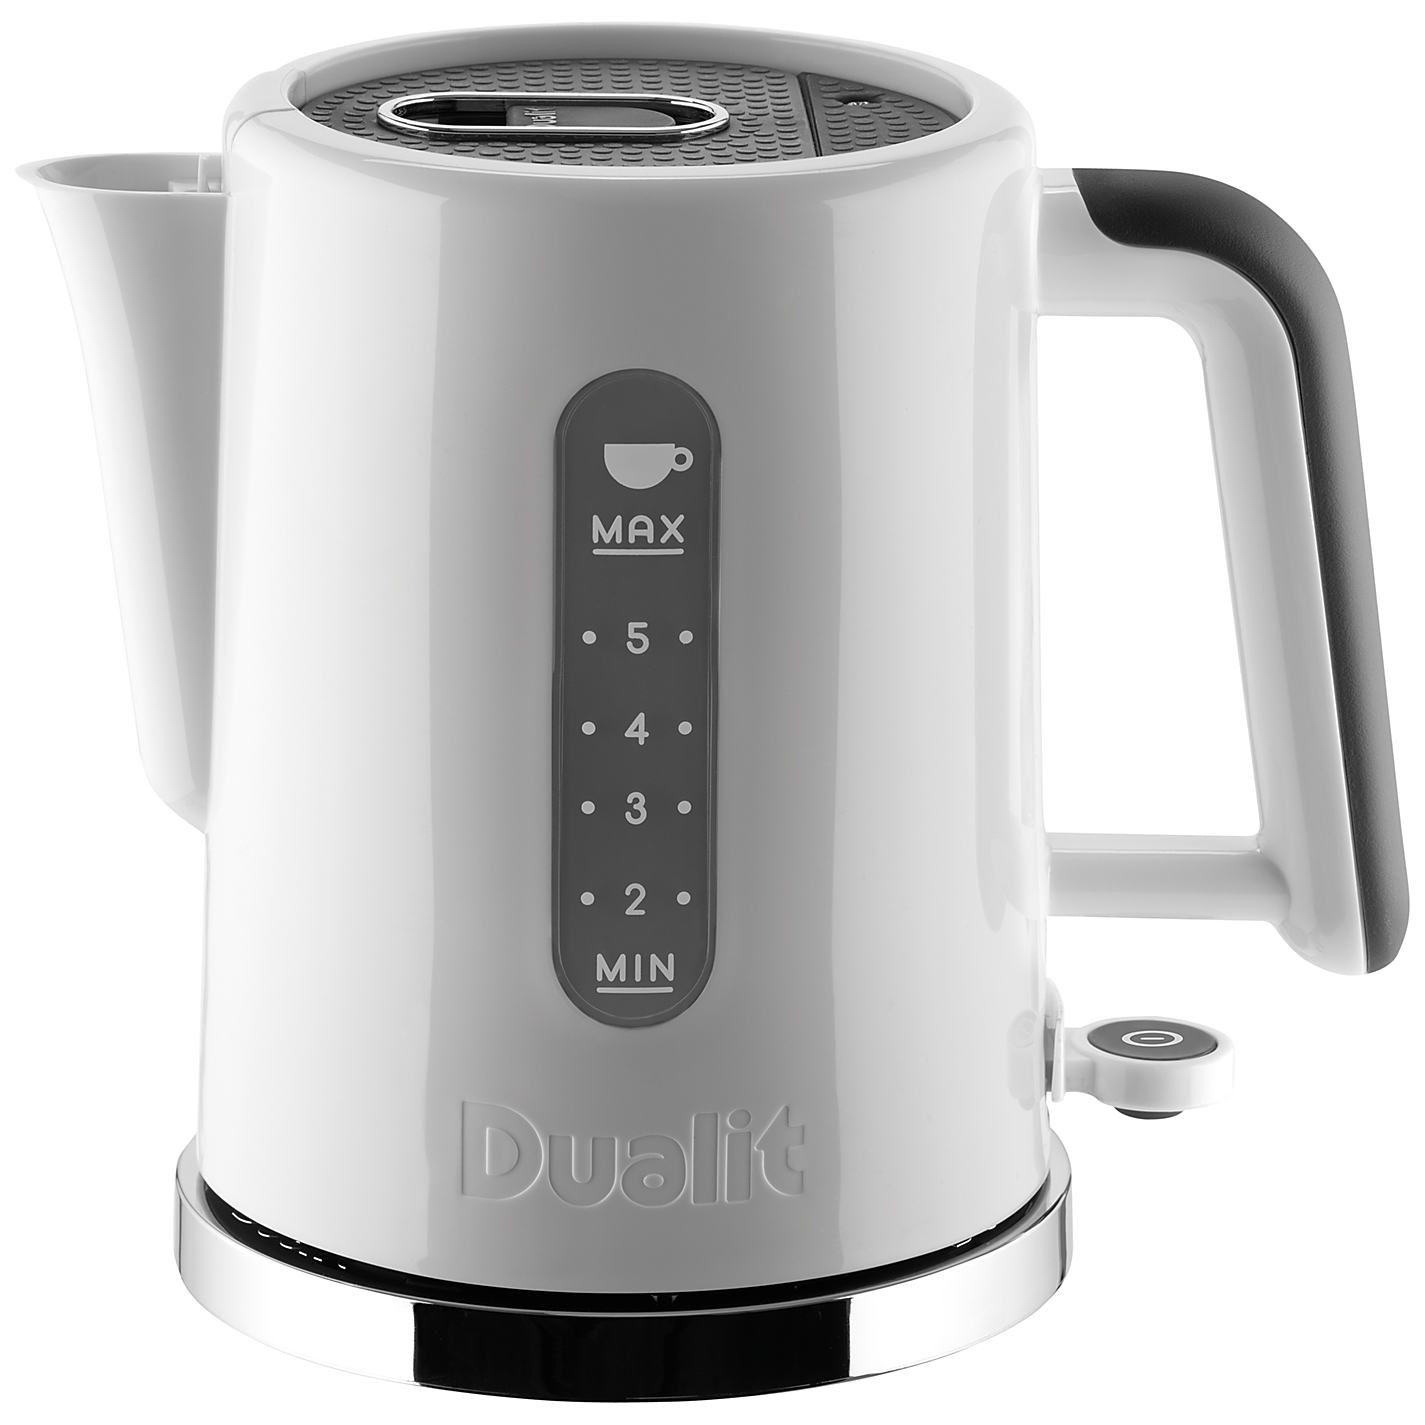 images?q=tbn:ANd9GcQh_l3eQ5xwiPy07kGEXjmjgmBKBRB7H2mRxCGhv1tFWg5c_mWT Kitchenaid Kettle And Toaster Imperial Grey